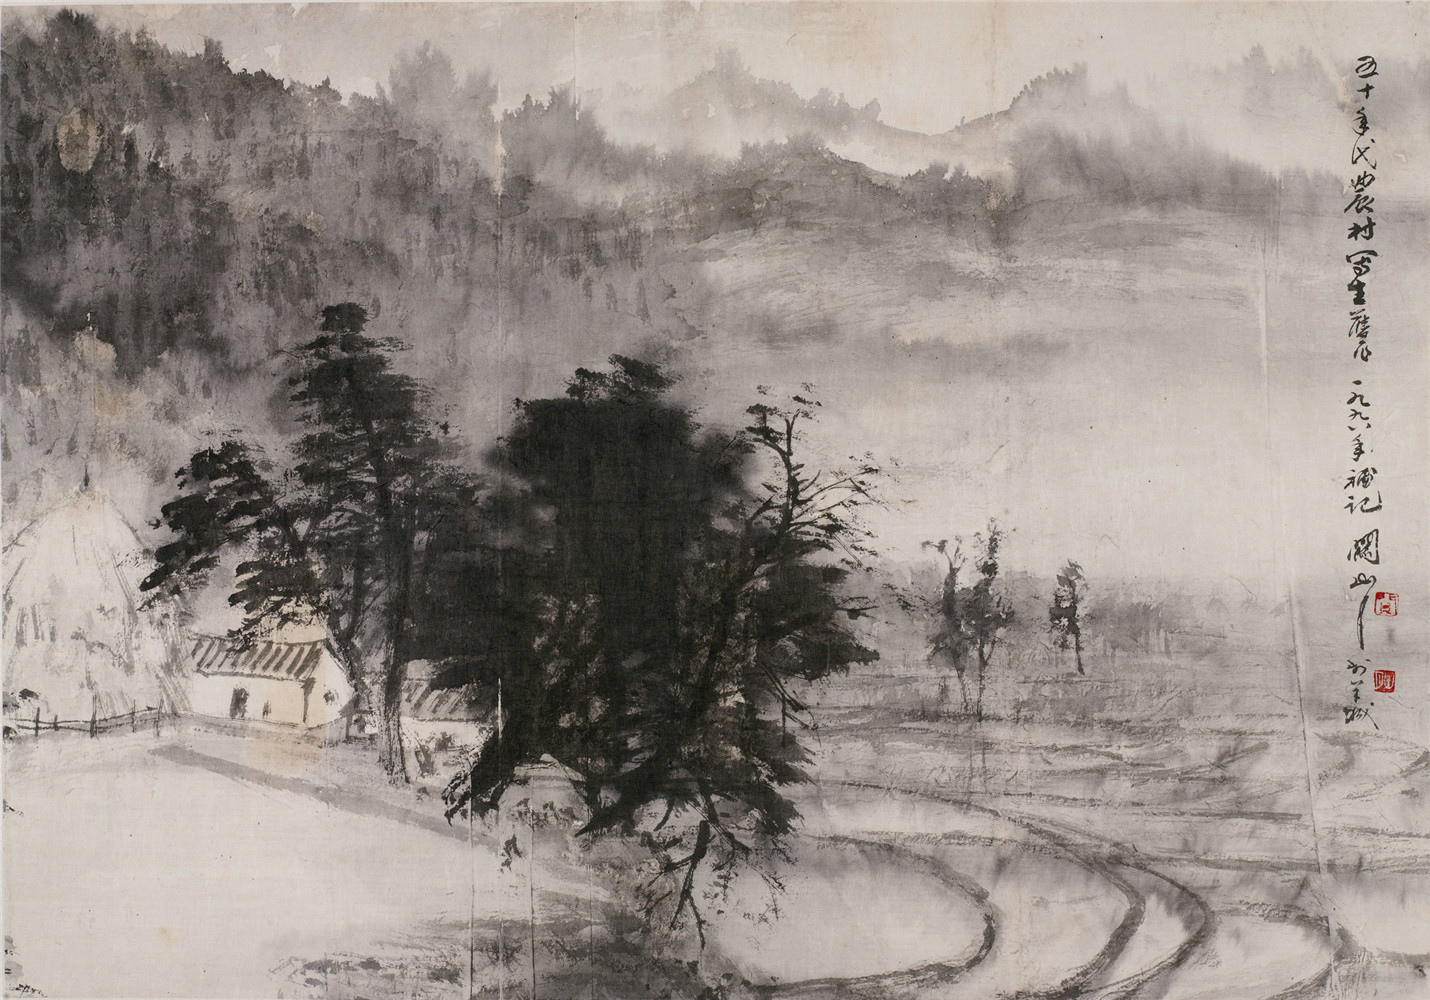 The painting Guan Shanyue